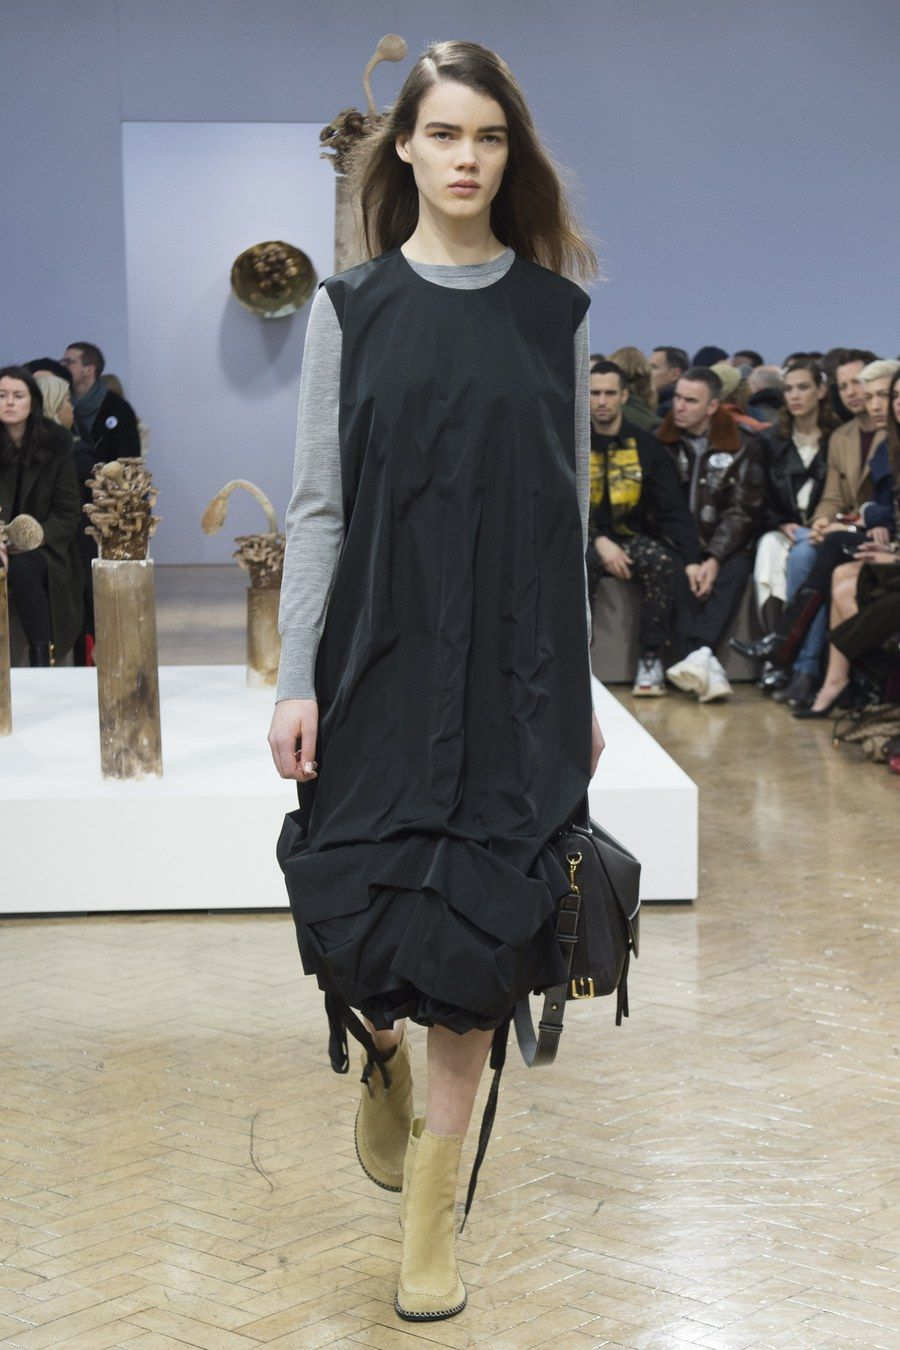 Buy Jw fall anderson runway review pictures trends